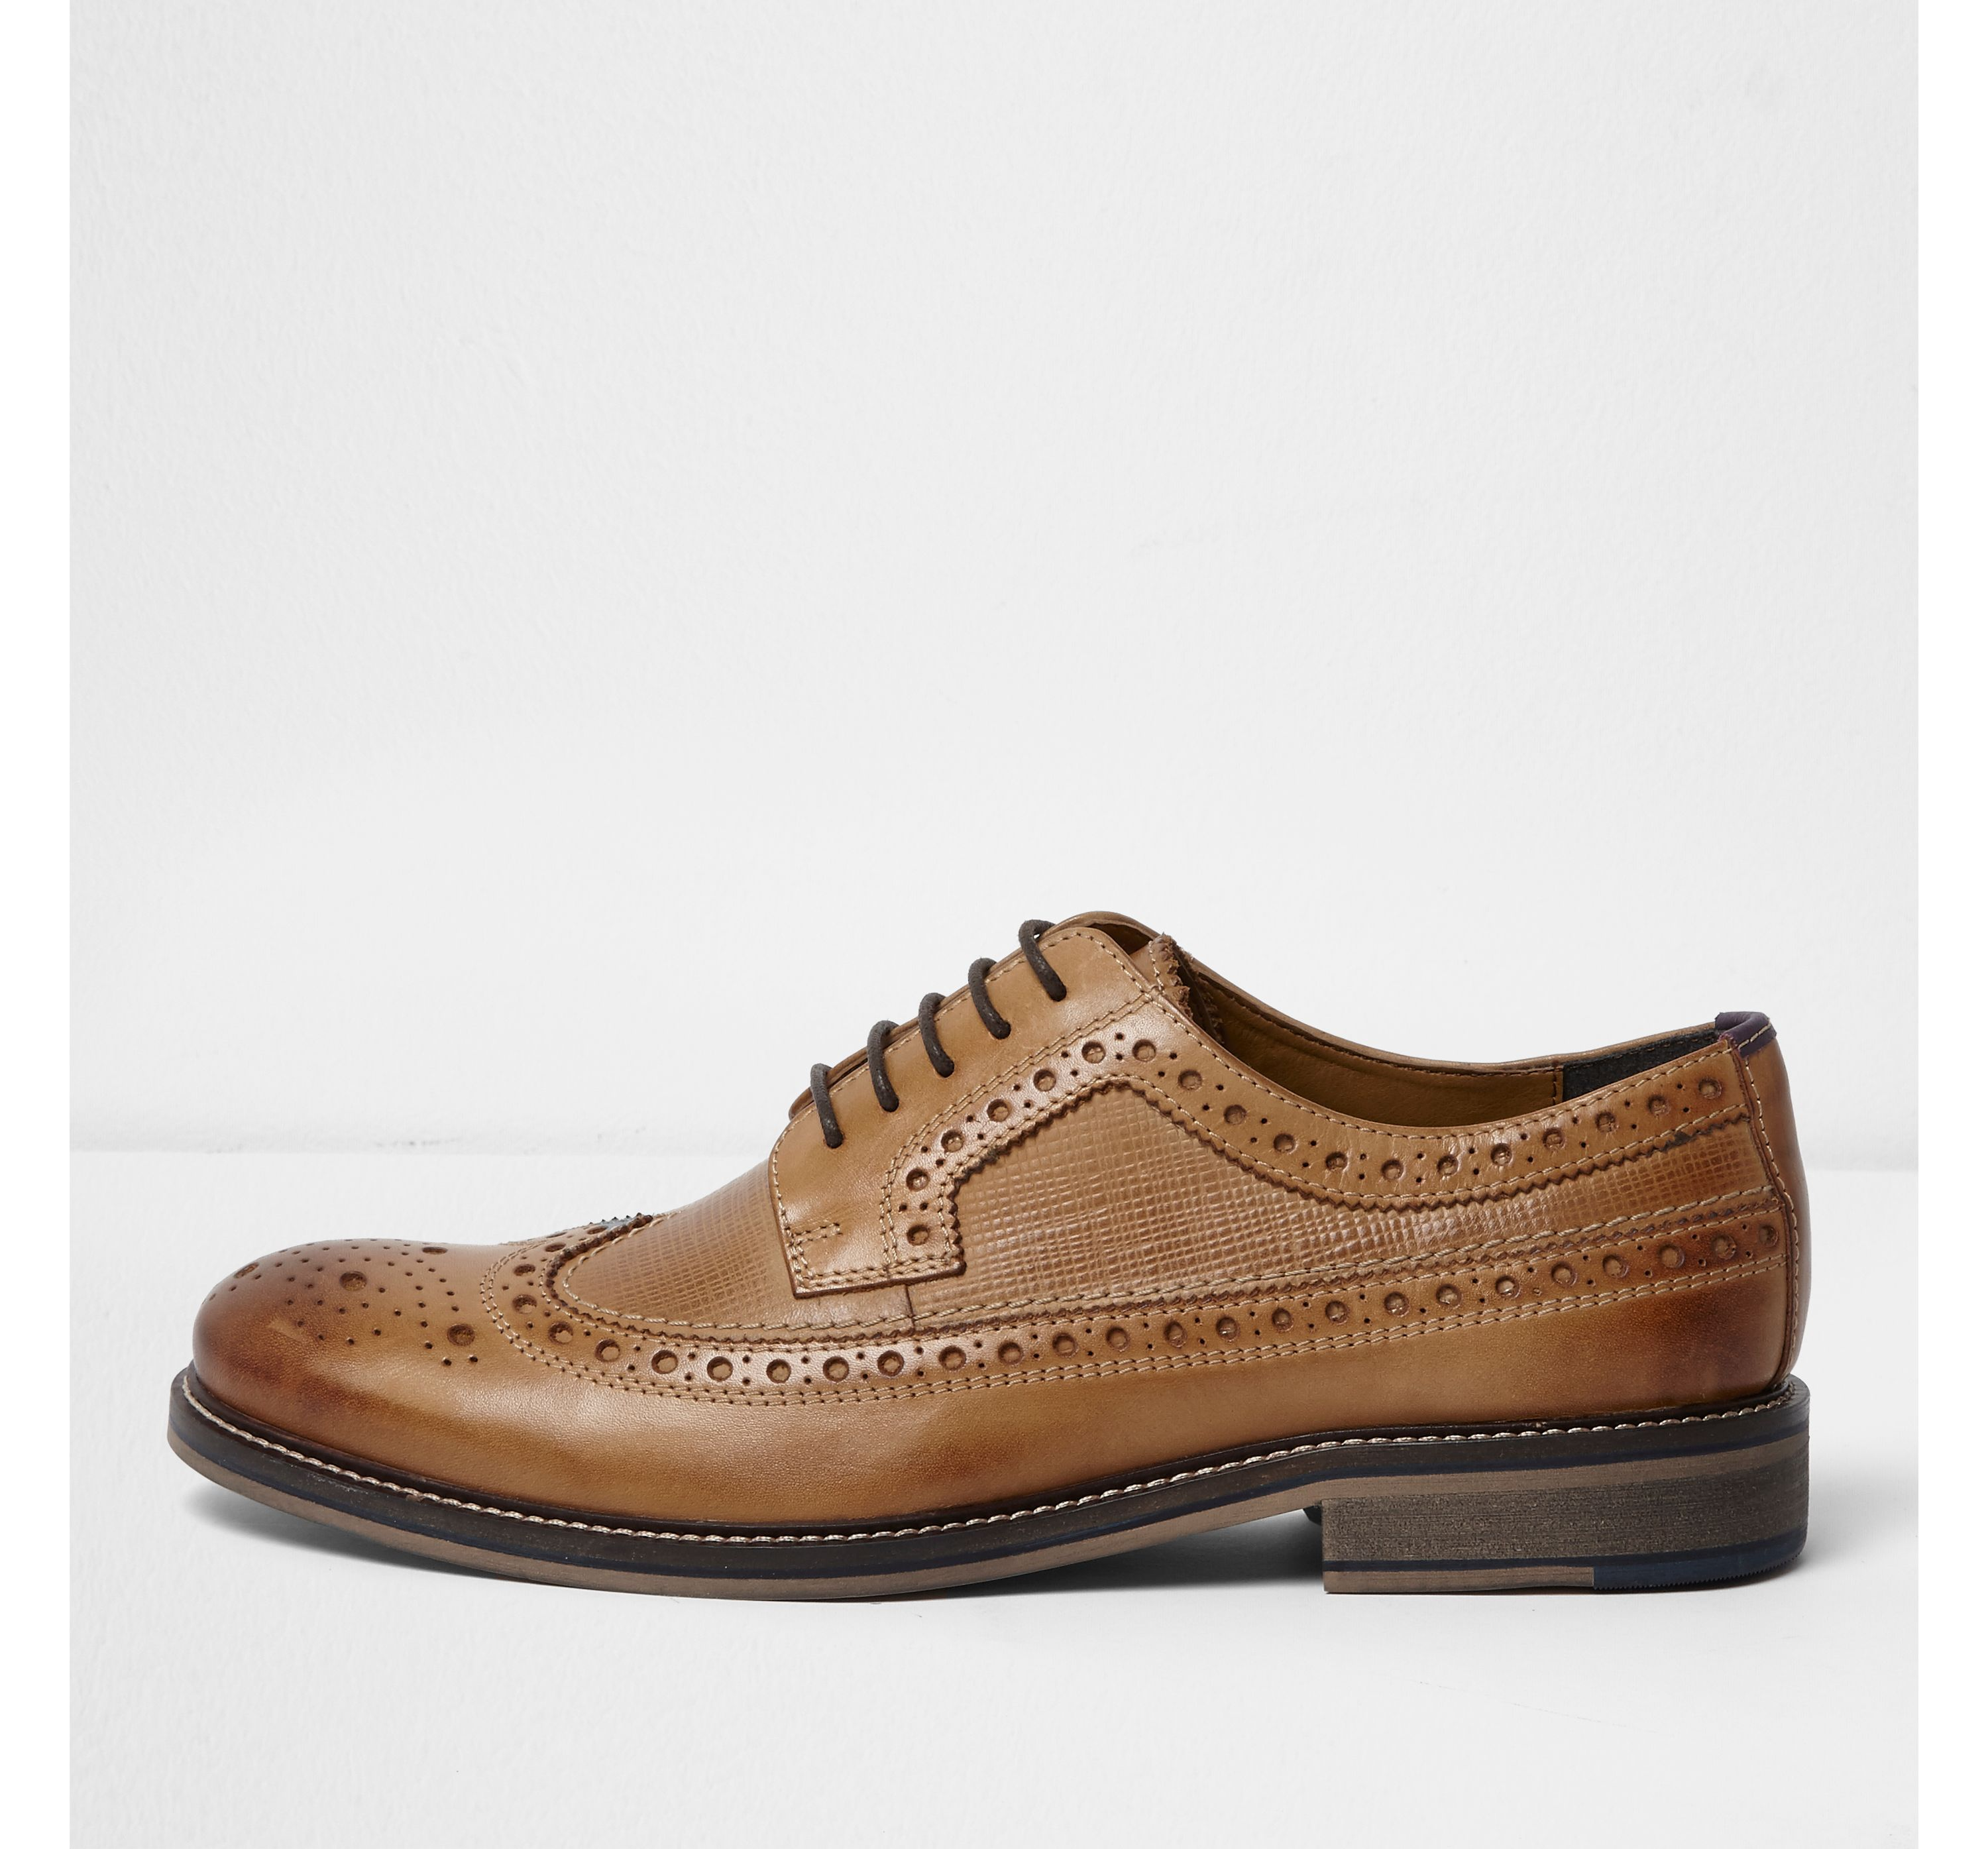 River Island Mens Light Tan leather brogues